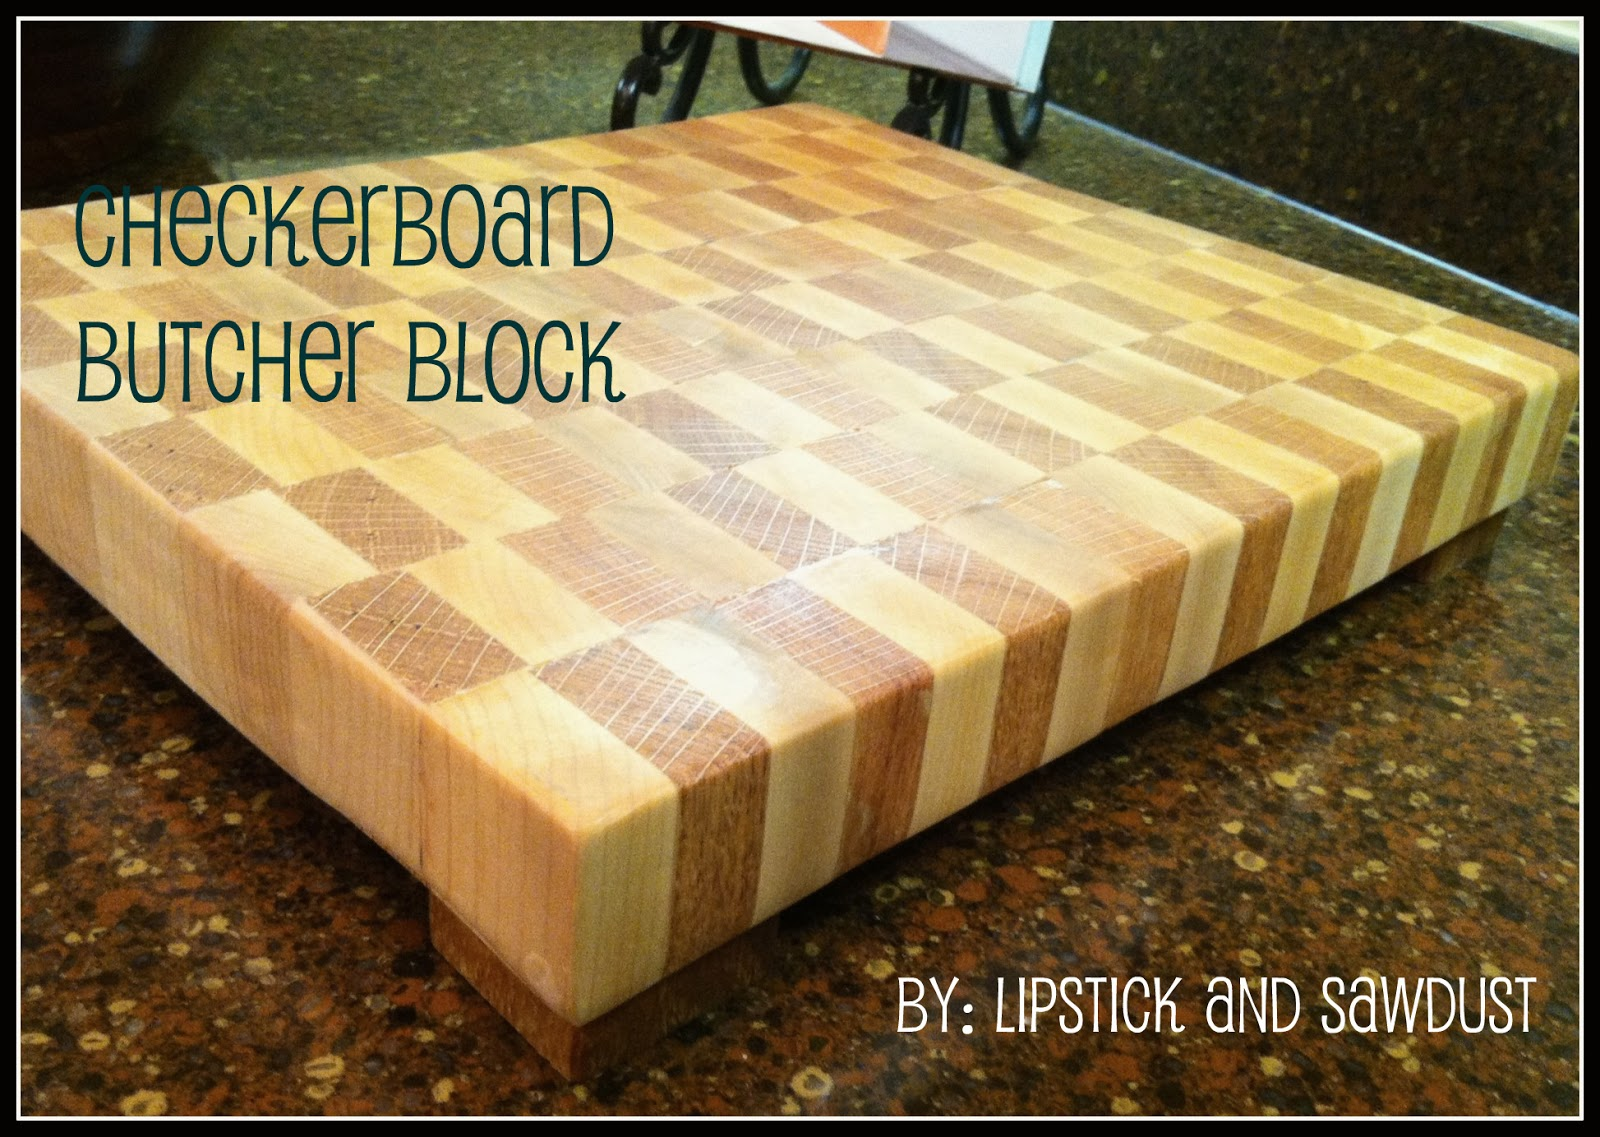 Lipstick and Sawdust Checkerboard Butcher Block Tutorial